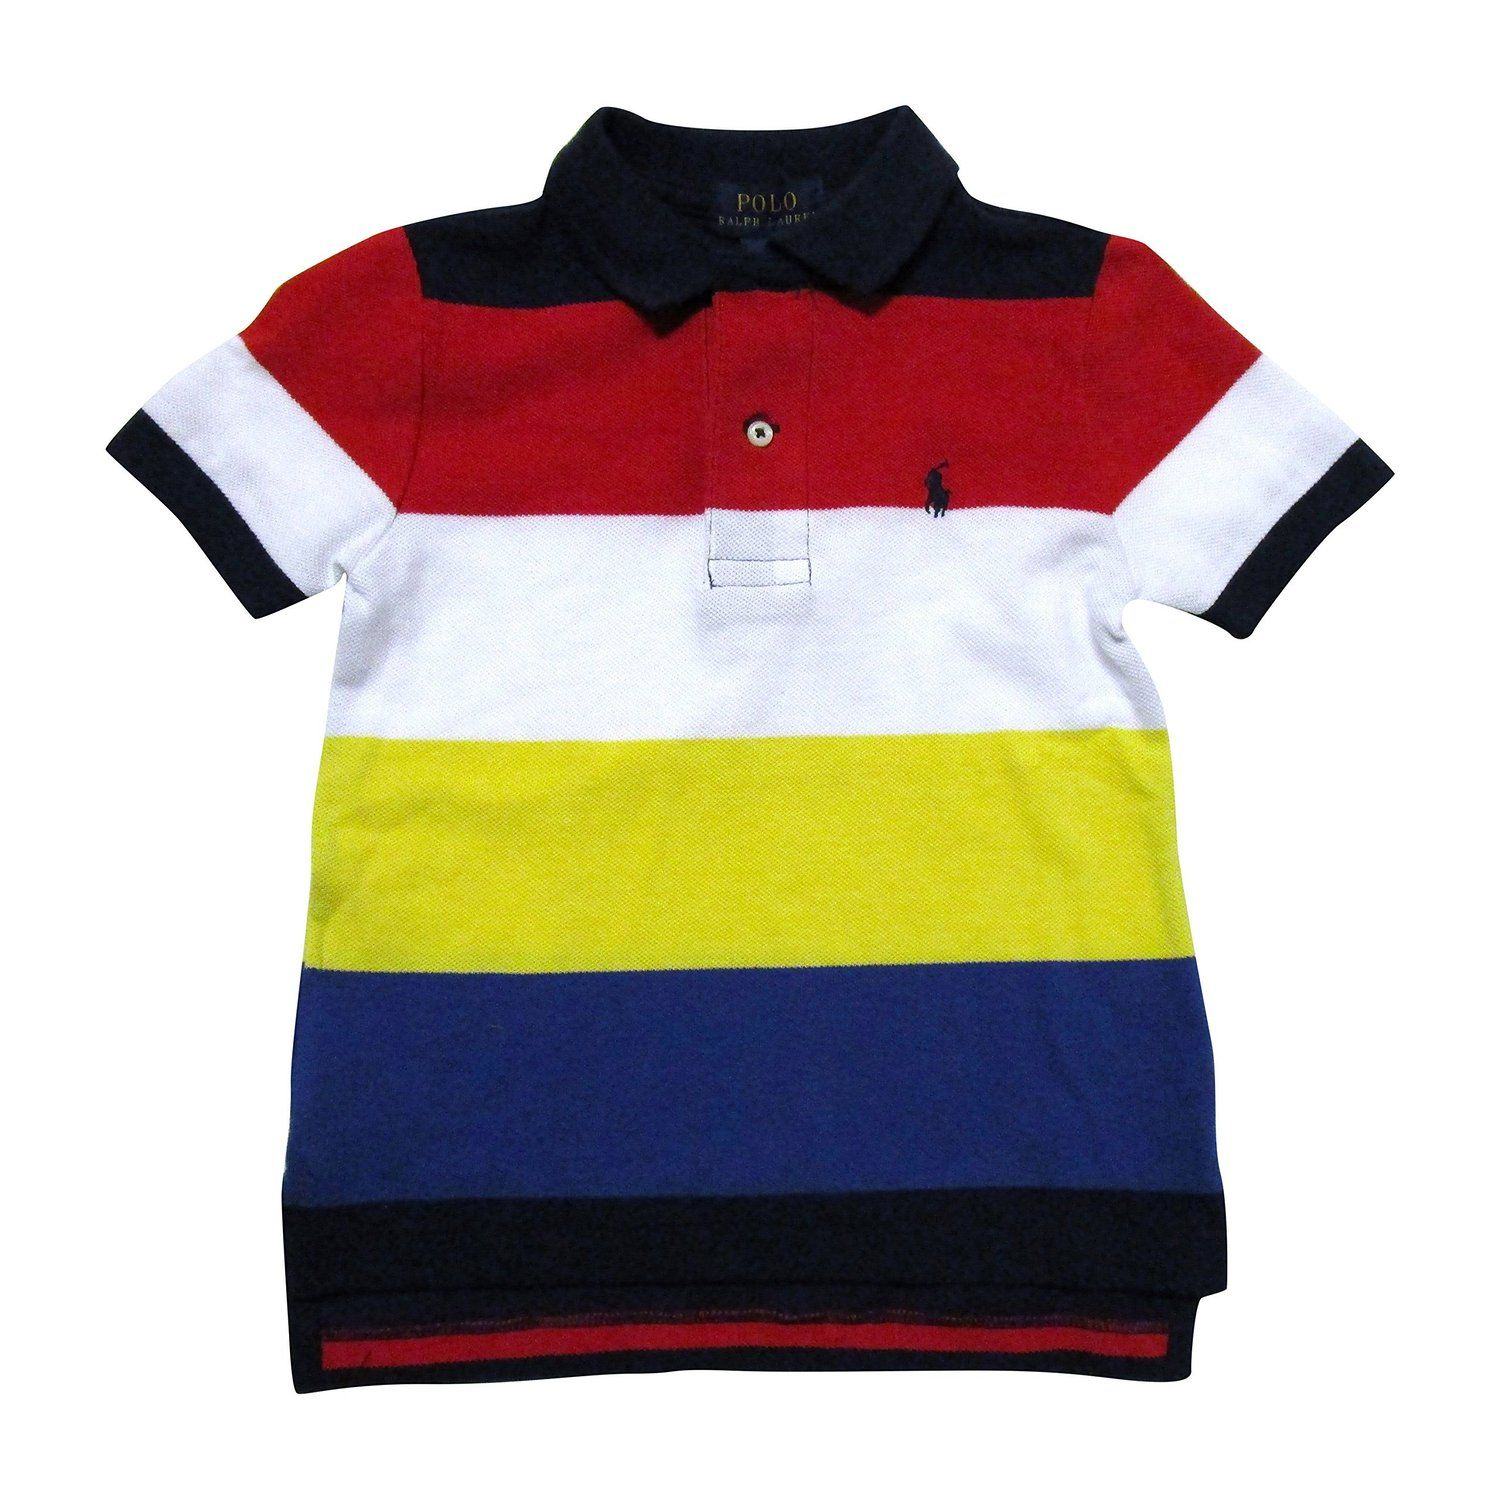 f8bf3c0c41ab89 Amazon.com  Polo Ralph Lauren Toddler   Little Boys  Striped Polo Shirt (2T    Toddler